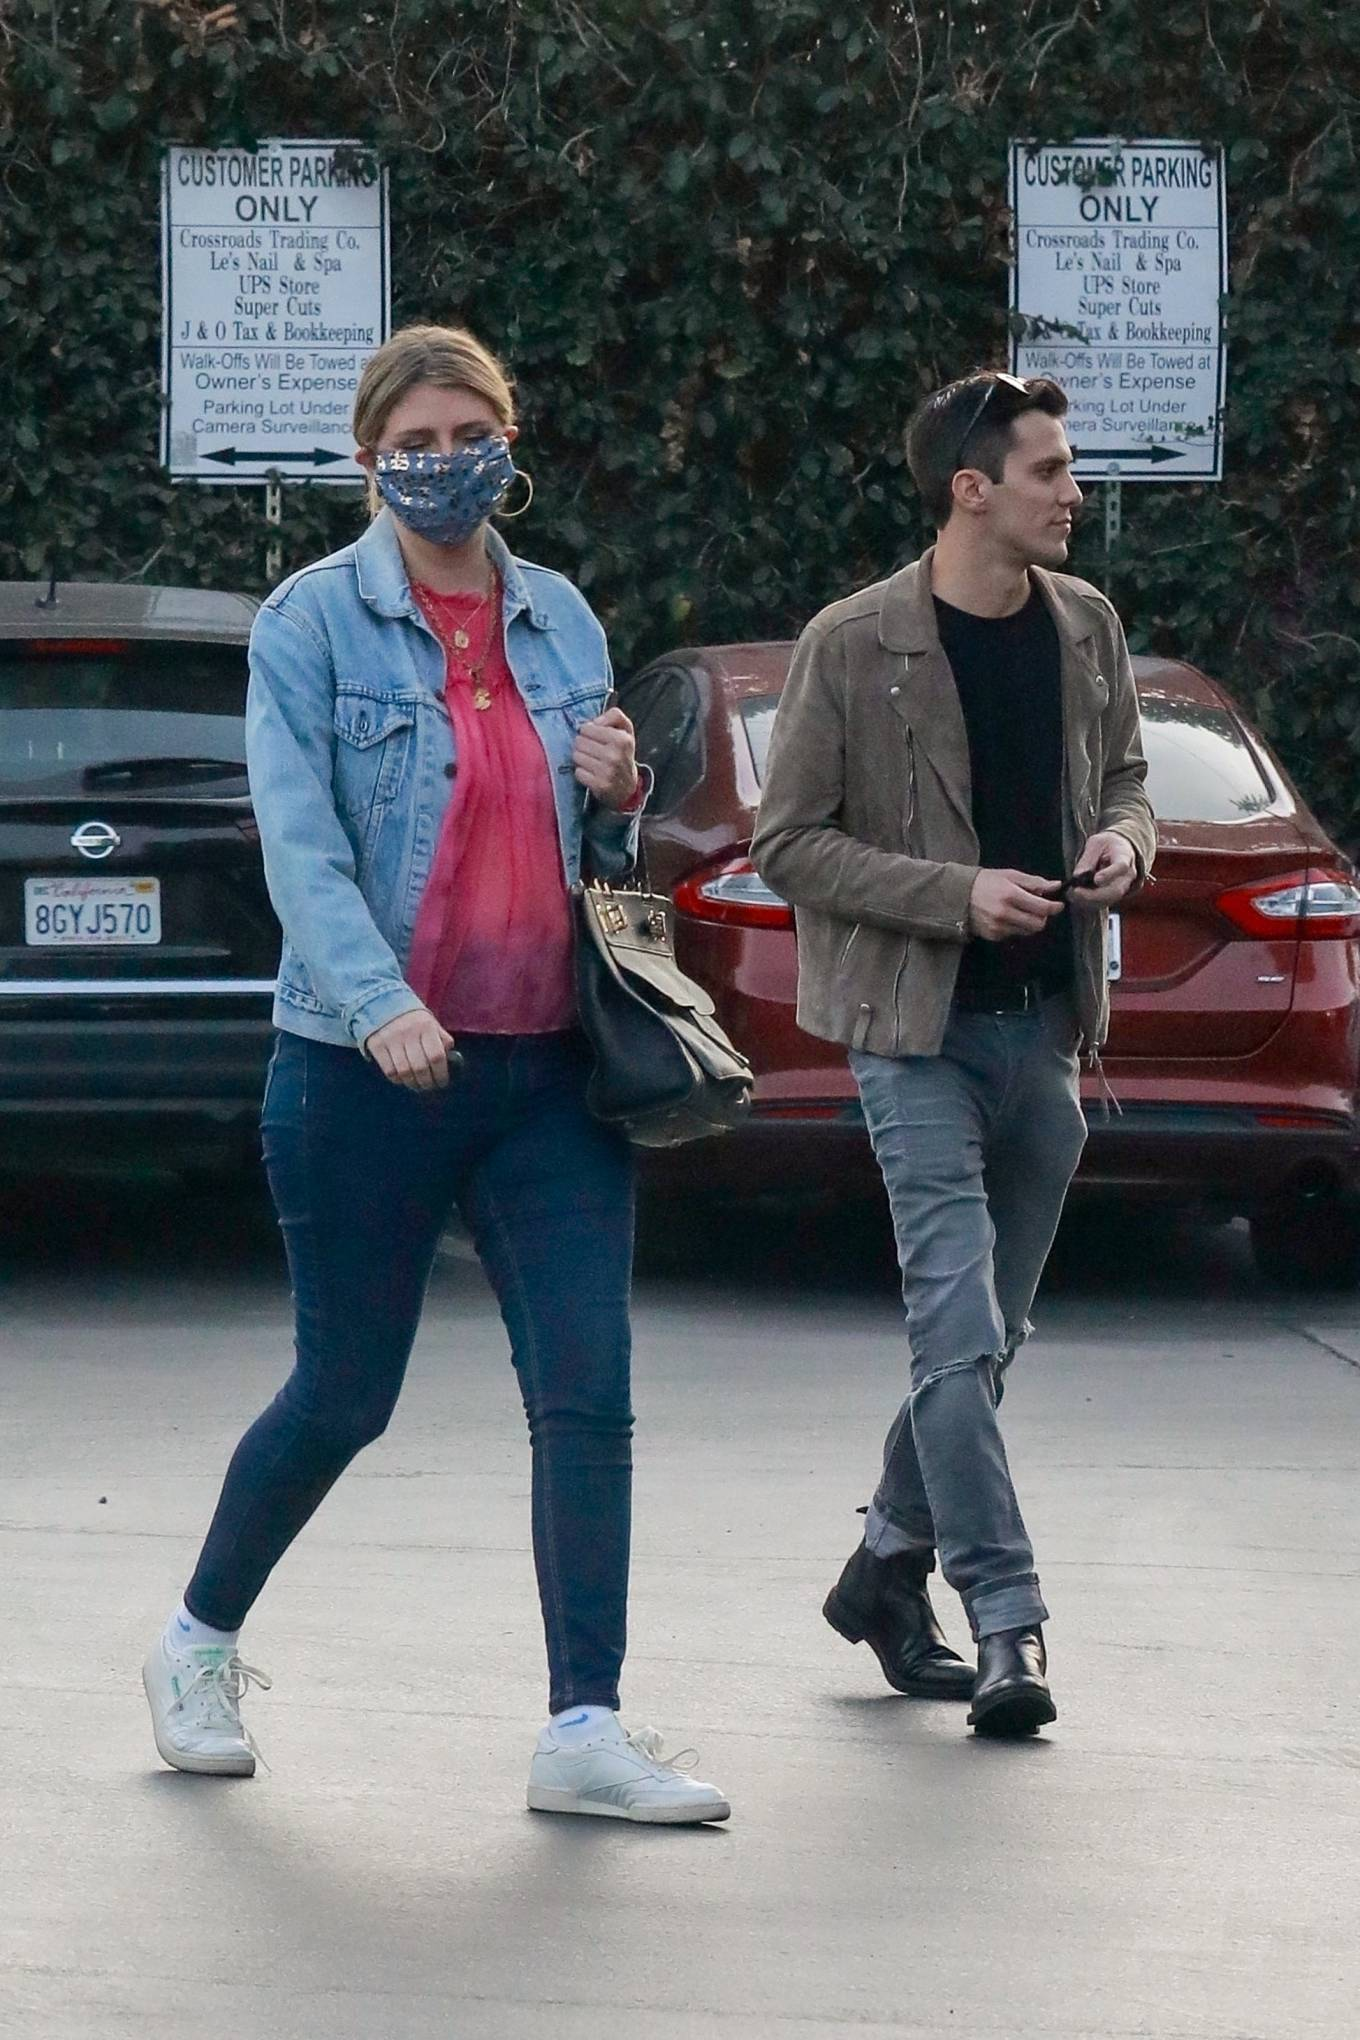 Mischa Barton 2020 : Mischa Barton – And her boyfriend Gian Marco Flamini at Tomato Pie Pizza Joint in Los Angeles -08